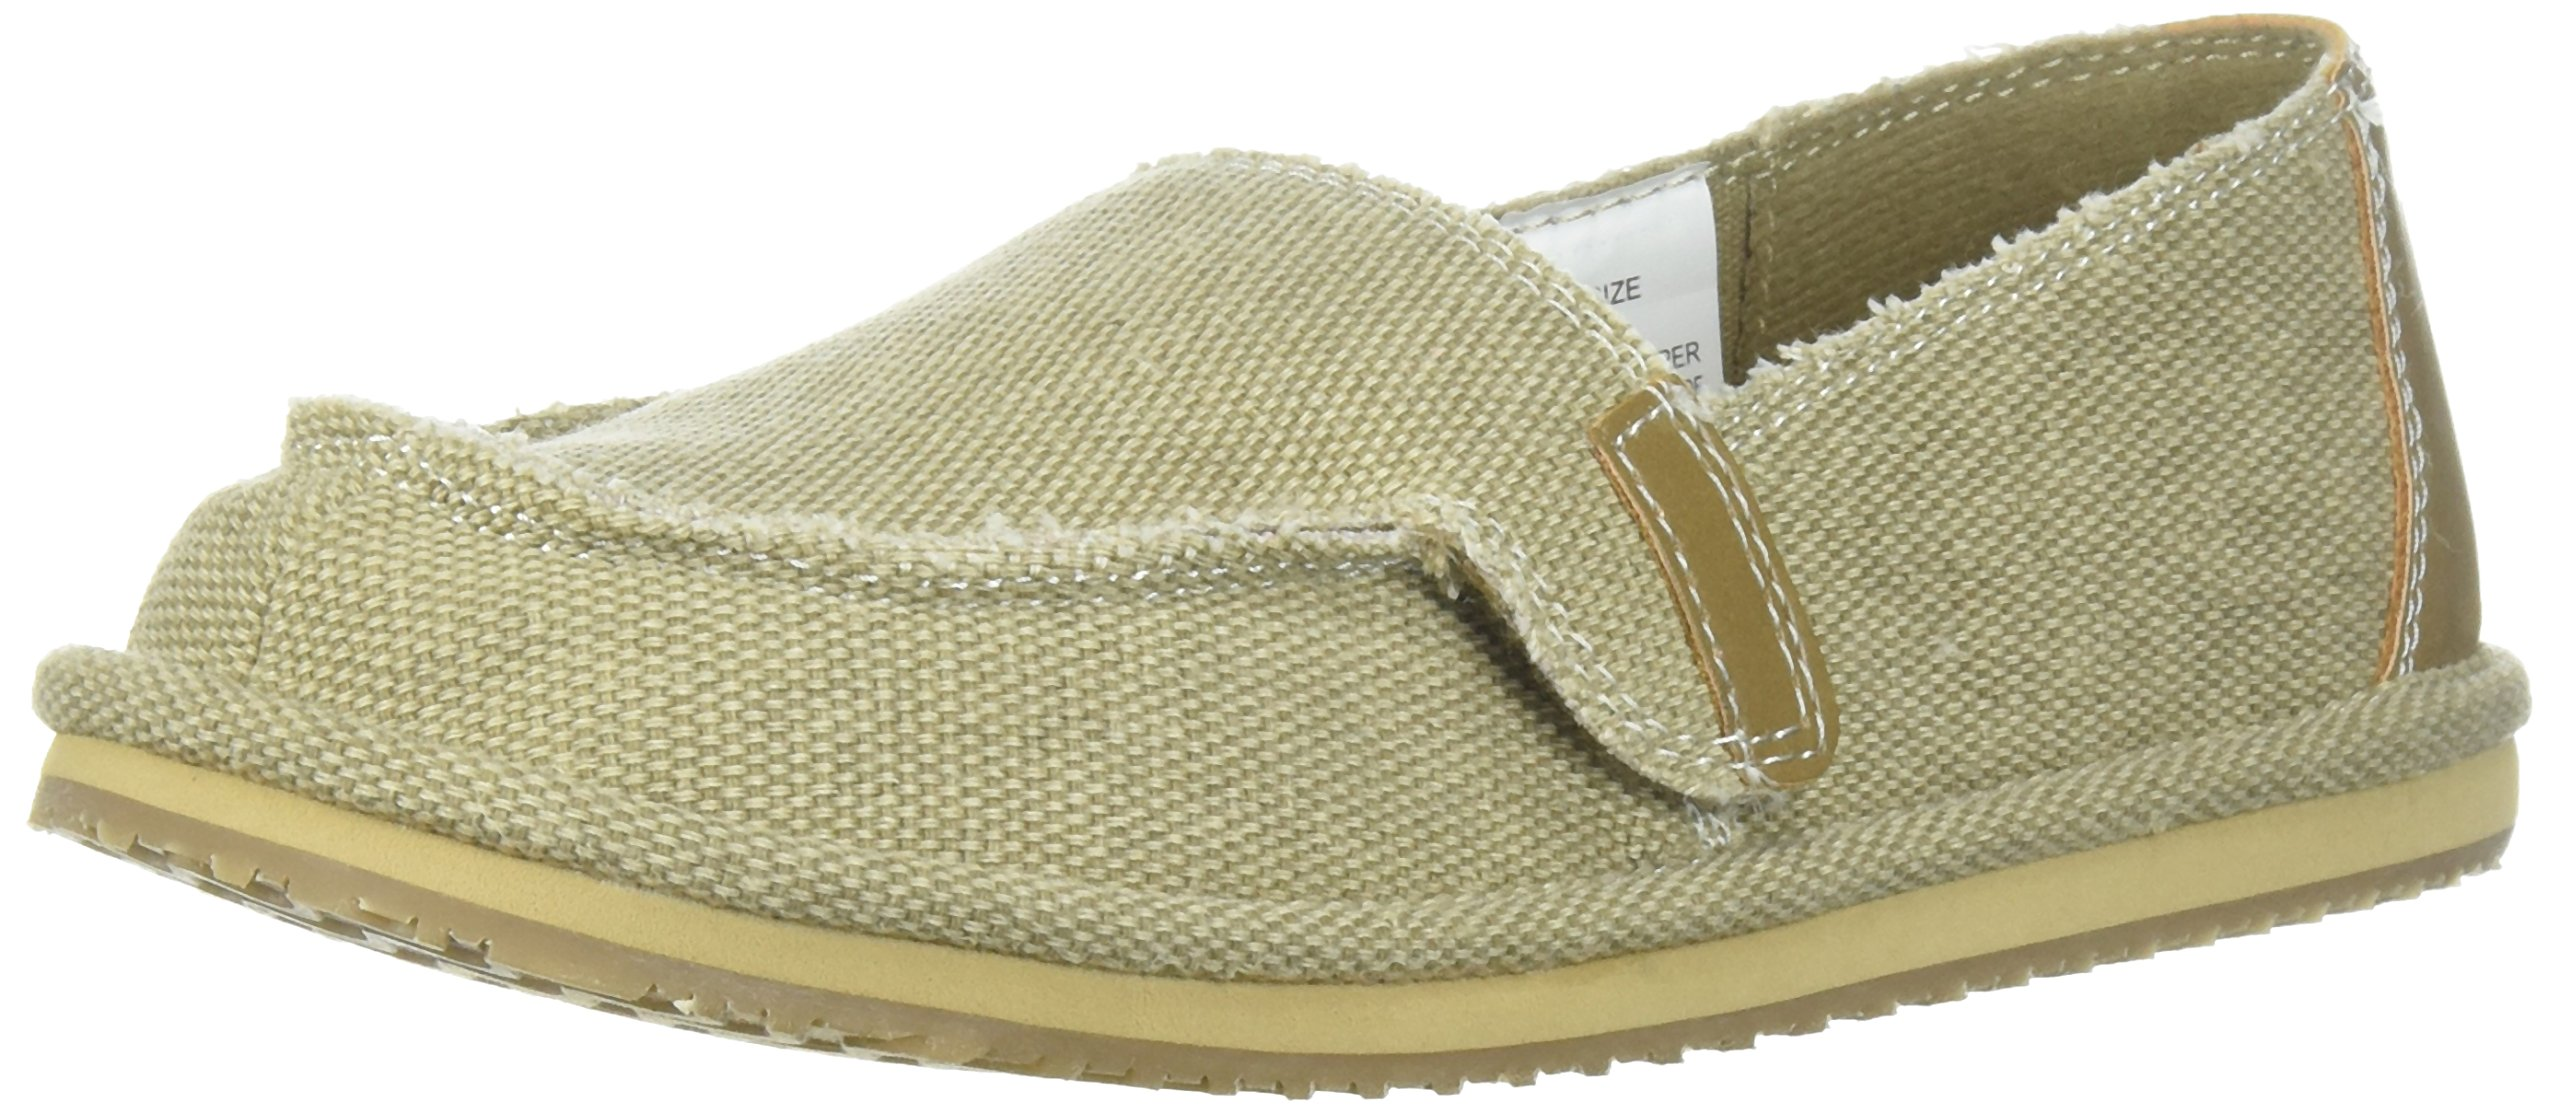 The Children's Place Boys' BB Slipon Deck Slipper, Tan, Youth 12 Medium US Big Kid